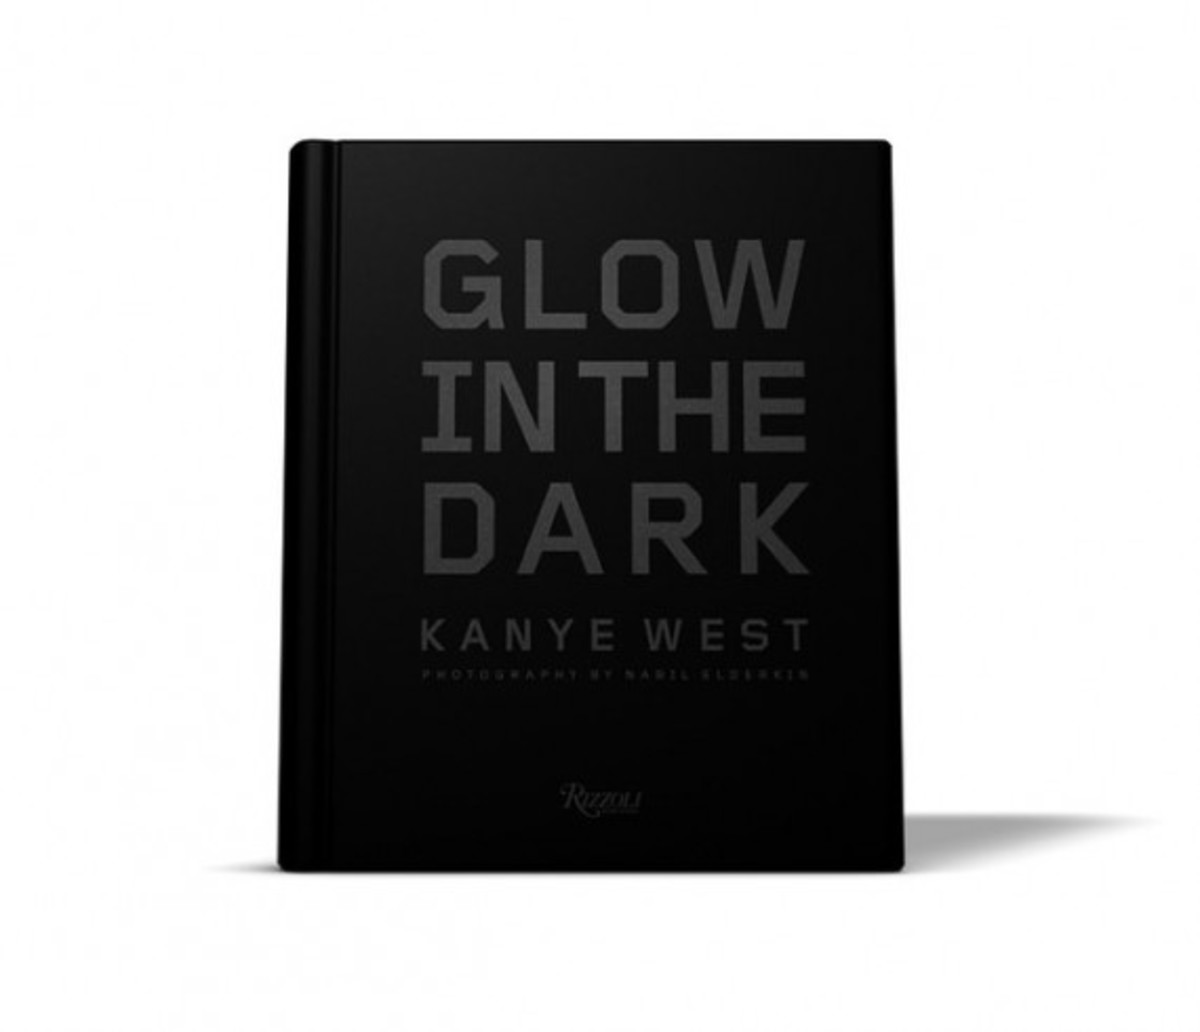 kanye-west-glow-in-the-dark-book-1